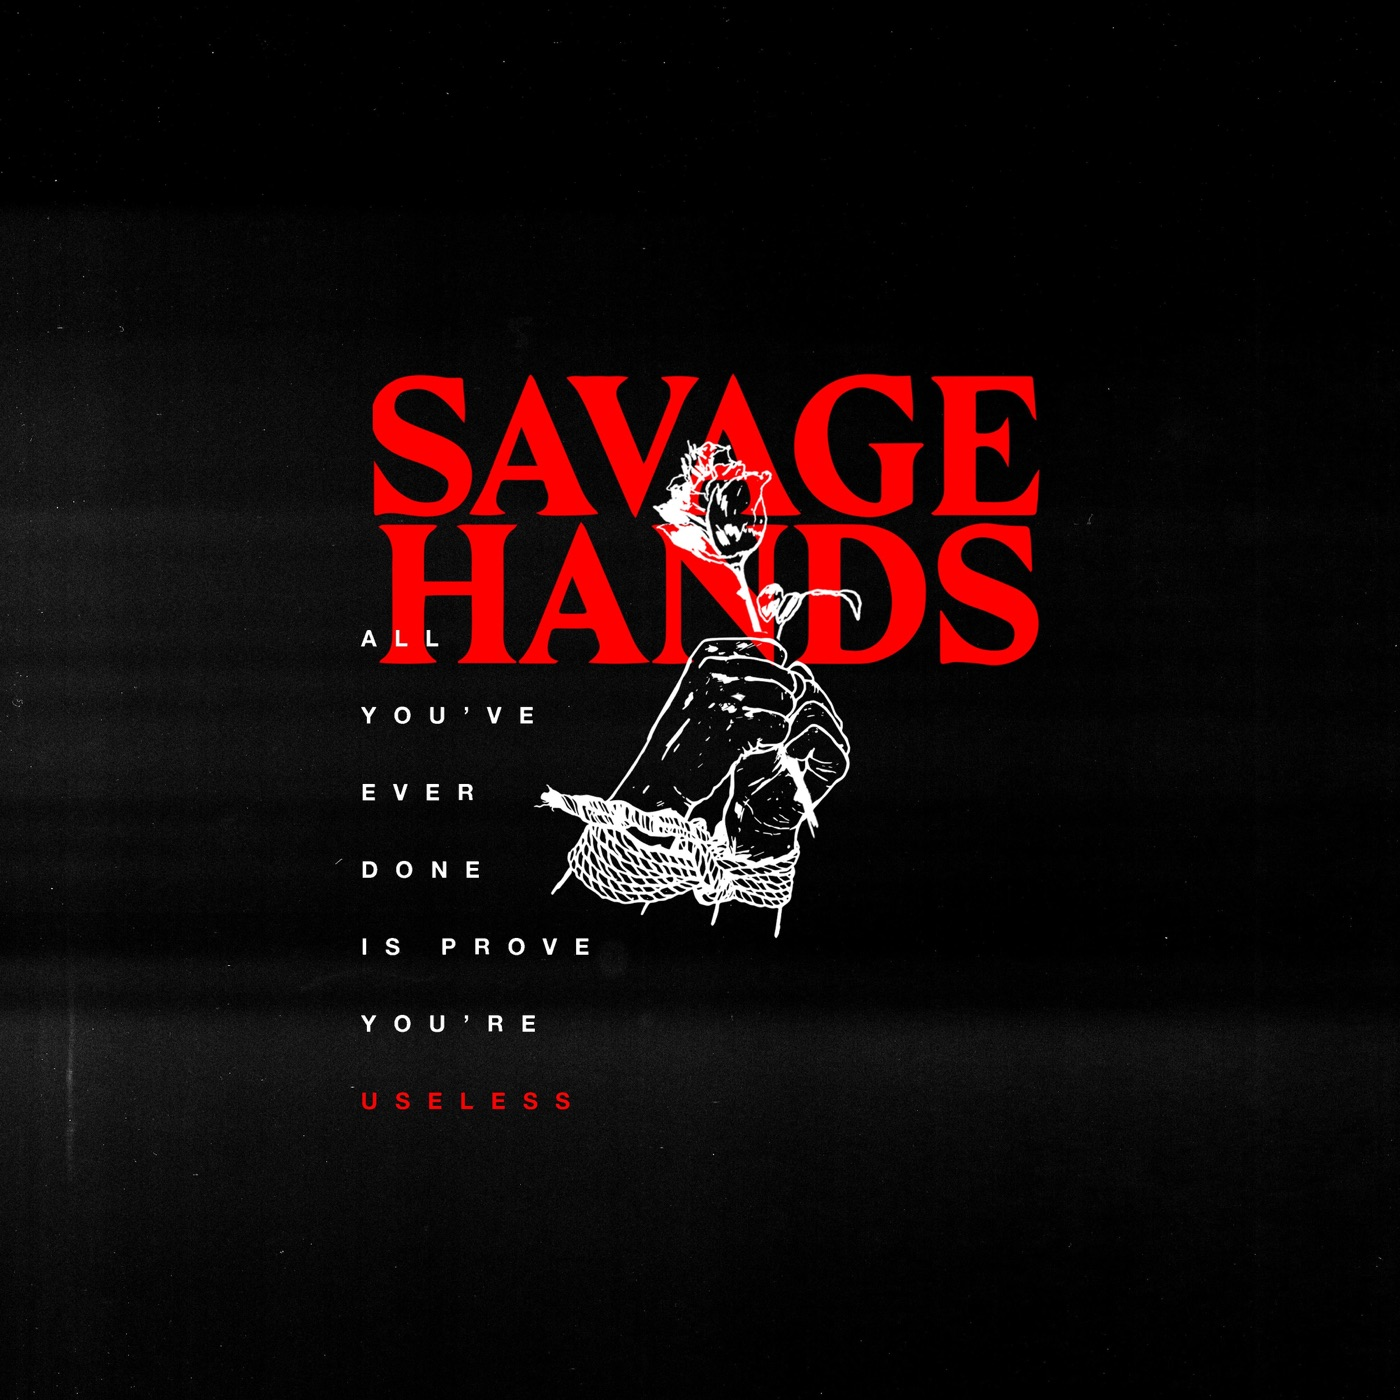 Savage Hands - Useless [Single] (2018)